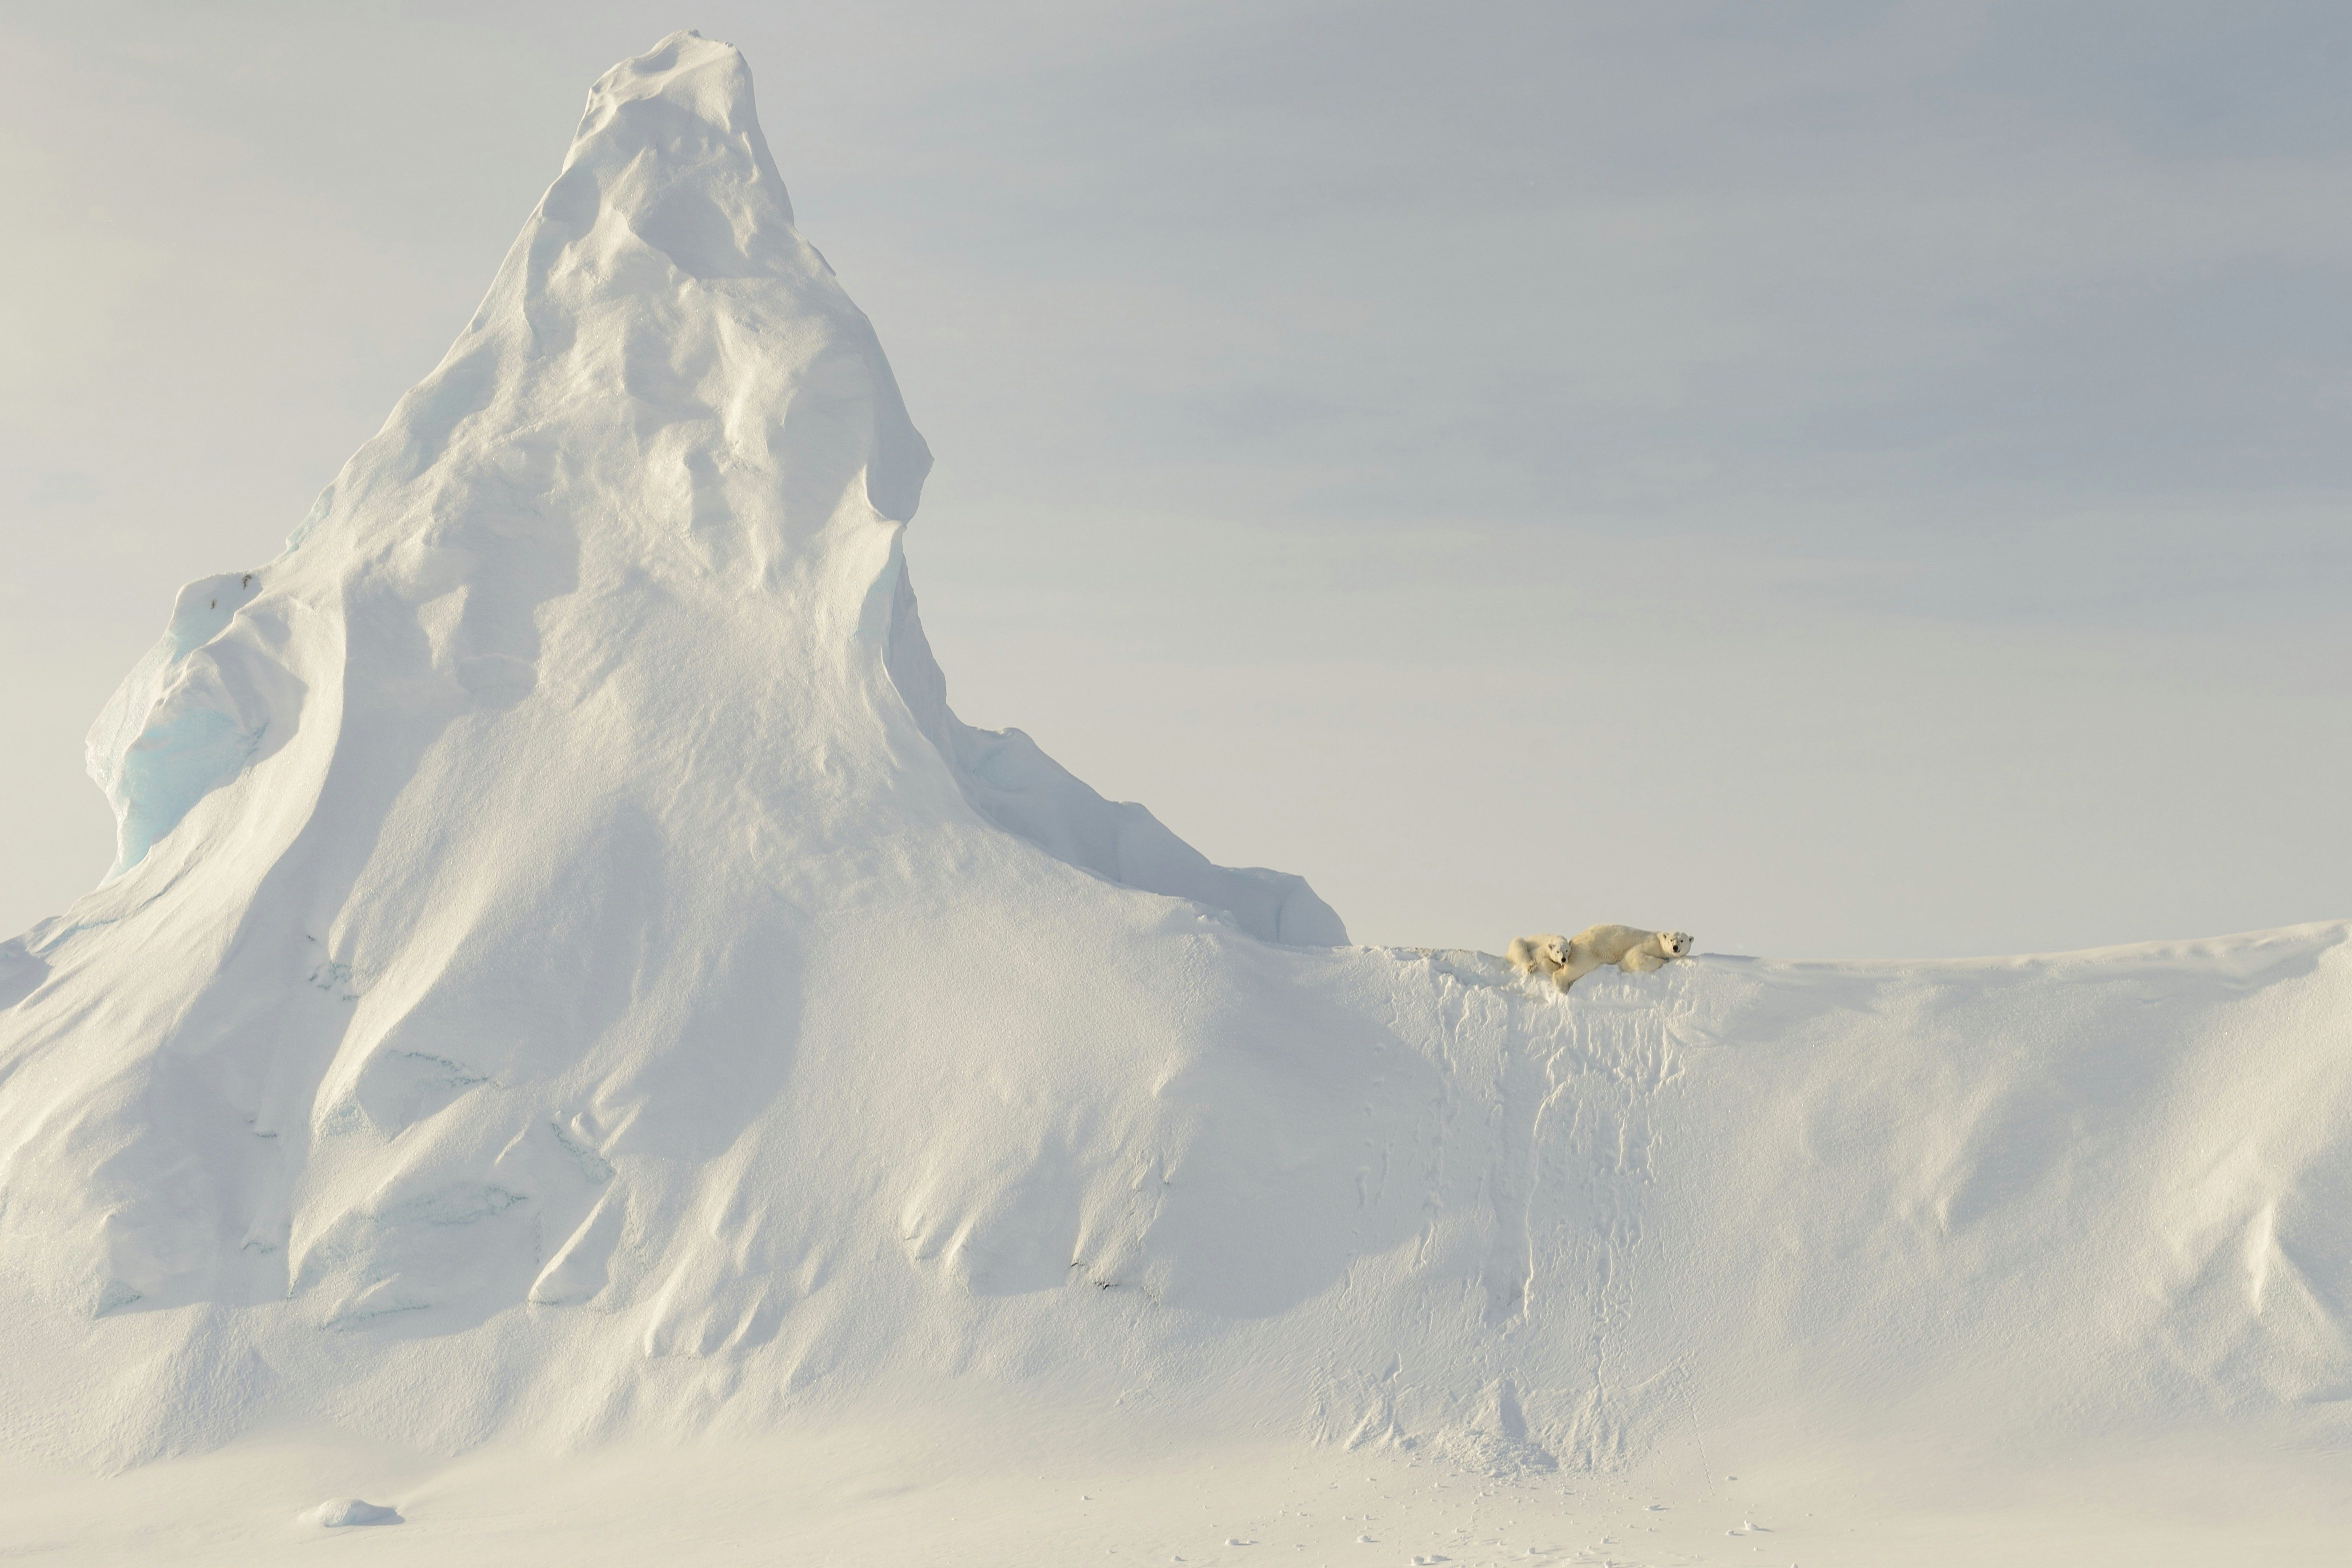 Bears on a Berg, Davis Strait, Baffin Island. Photograph: John Rollins/National Geographic Travel Photographer of the Year Contest